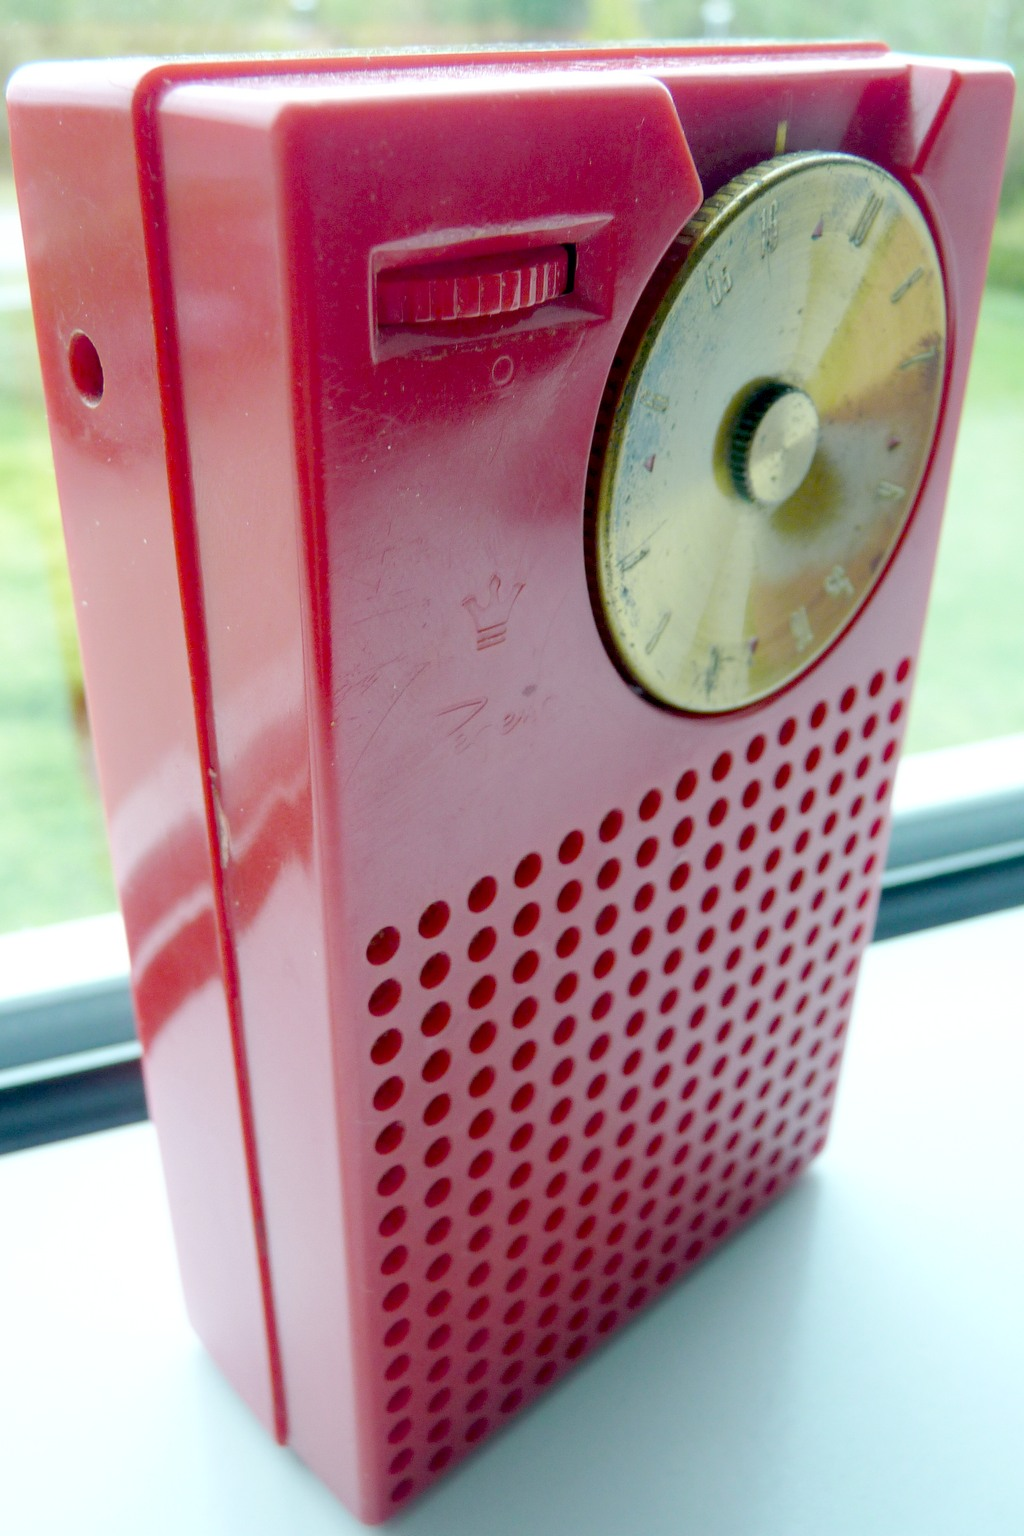 Transistor radio, not exactly leading innovation, but highly effective.